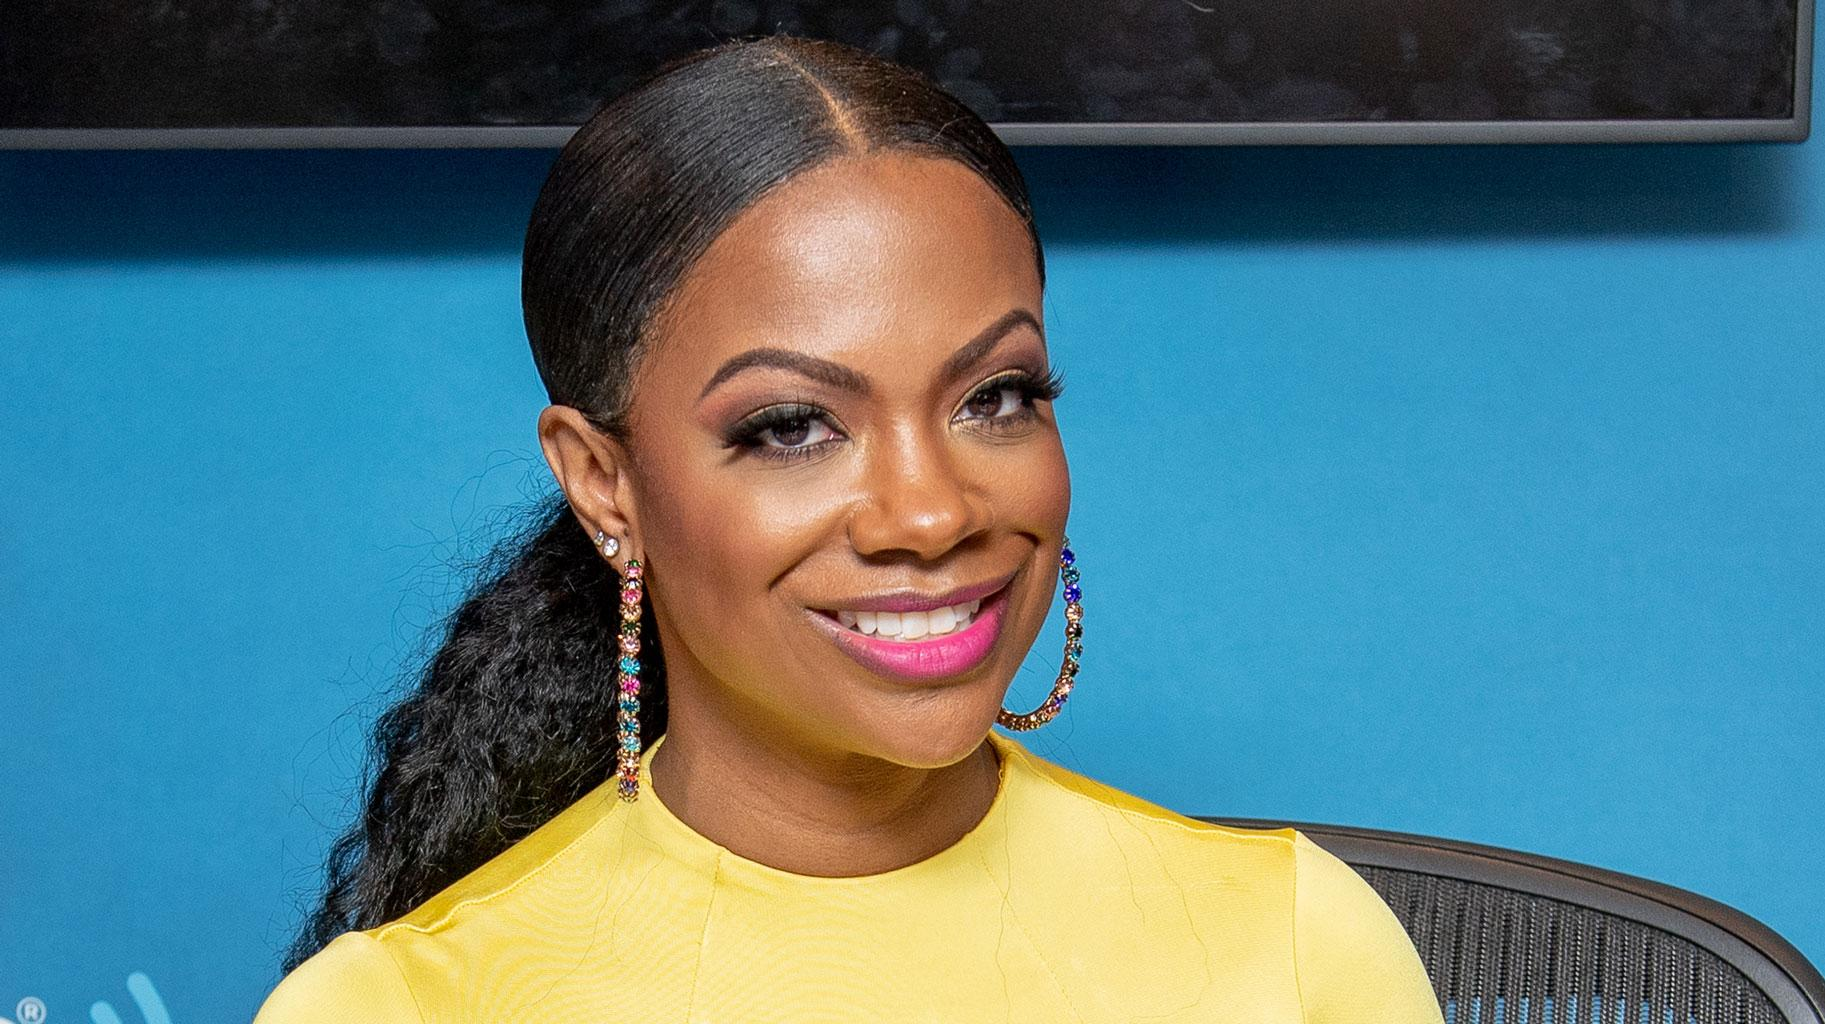 Kandi Burruss Wishes A Happy Birthday To A Special Person In Her Life - Read Her Message